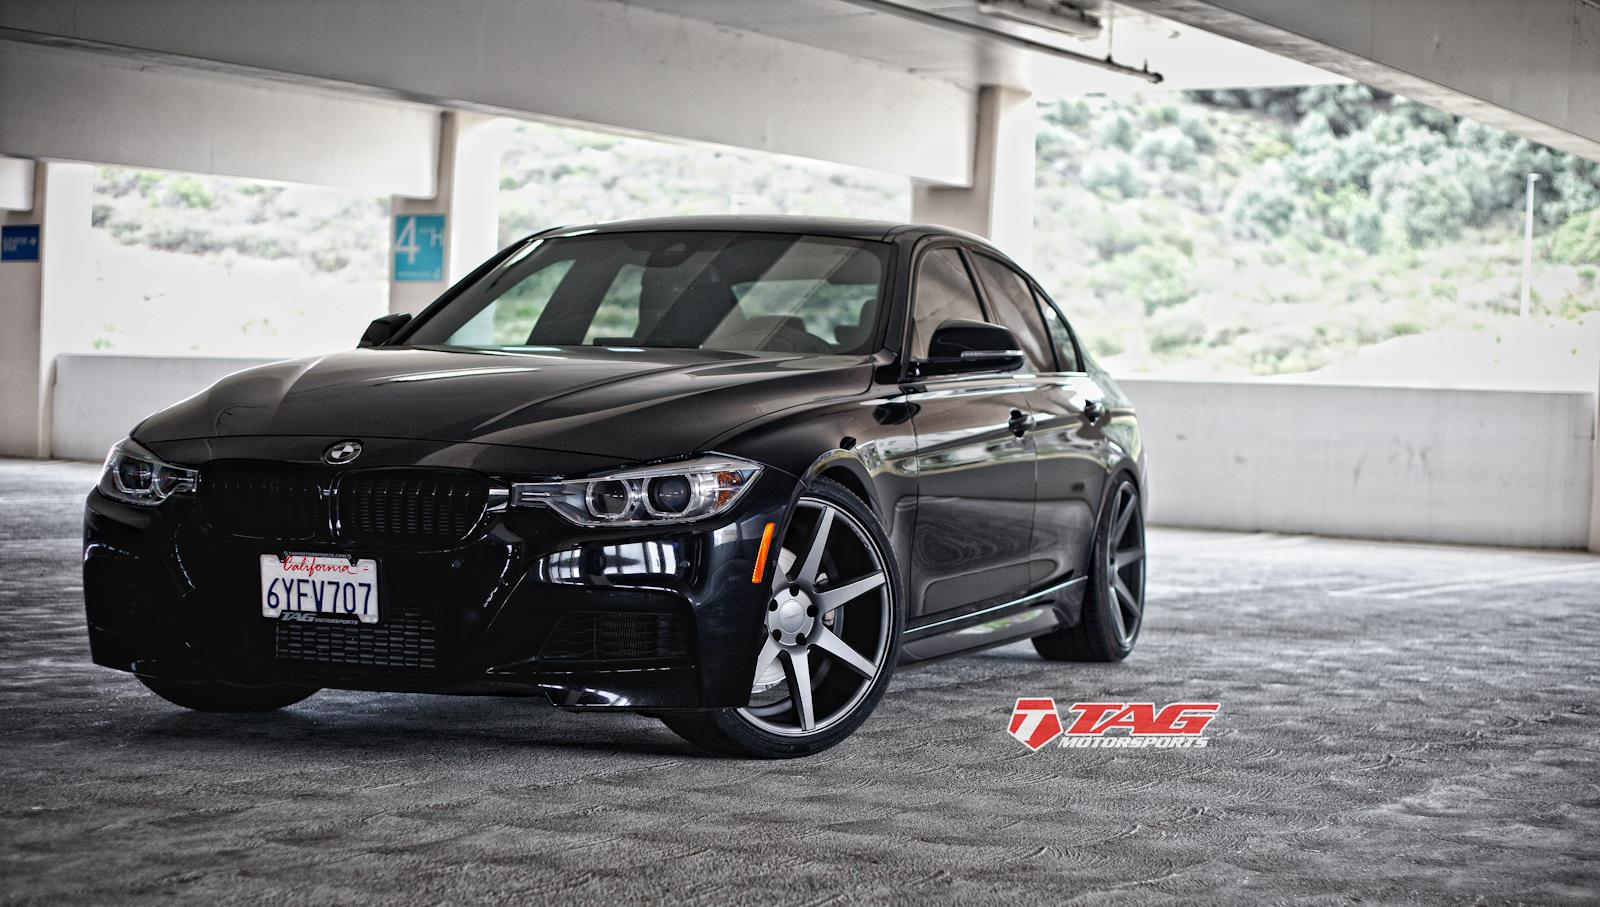 us tuning tag motorsports bmw 3er f30 auf 20 zoll vossen. Black Bedroom Furniture Sets. Home Design Ideas